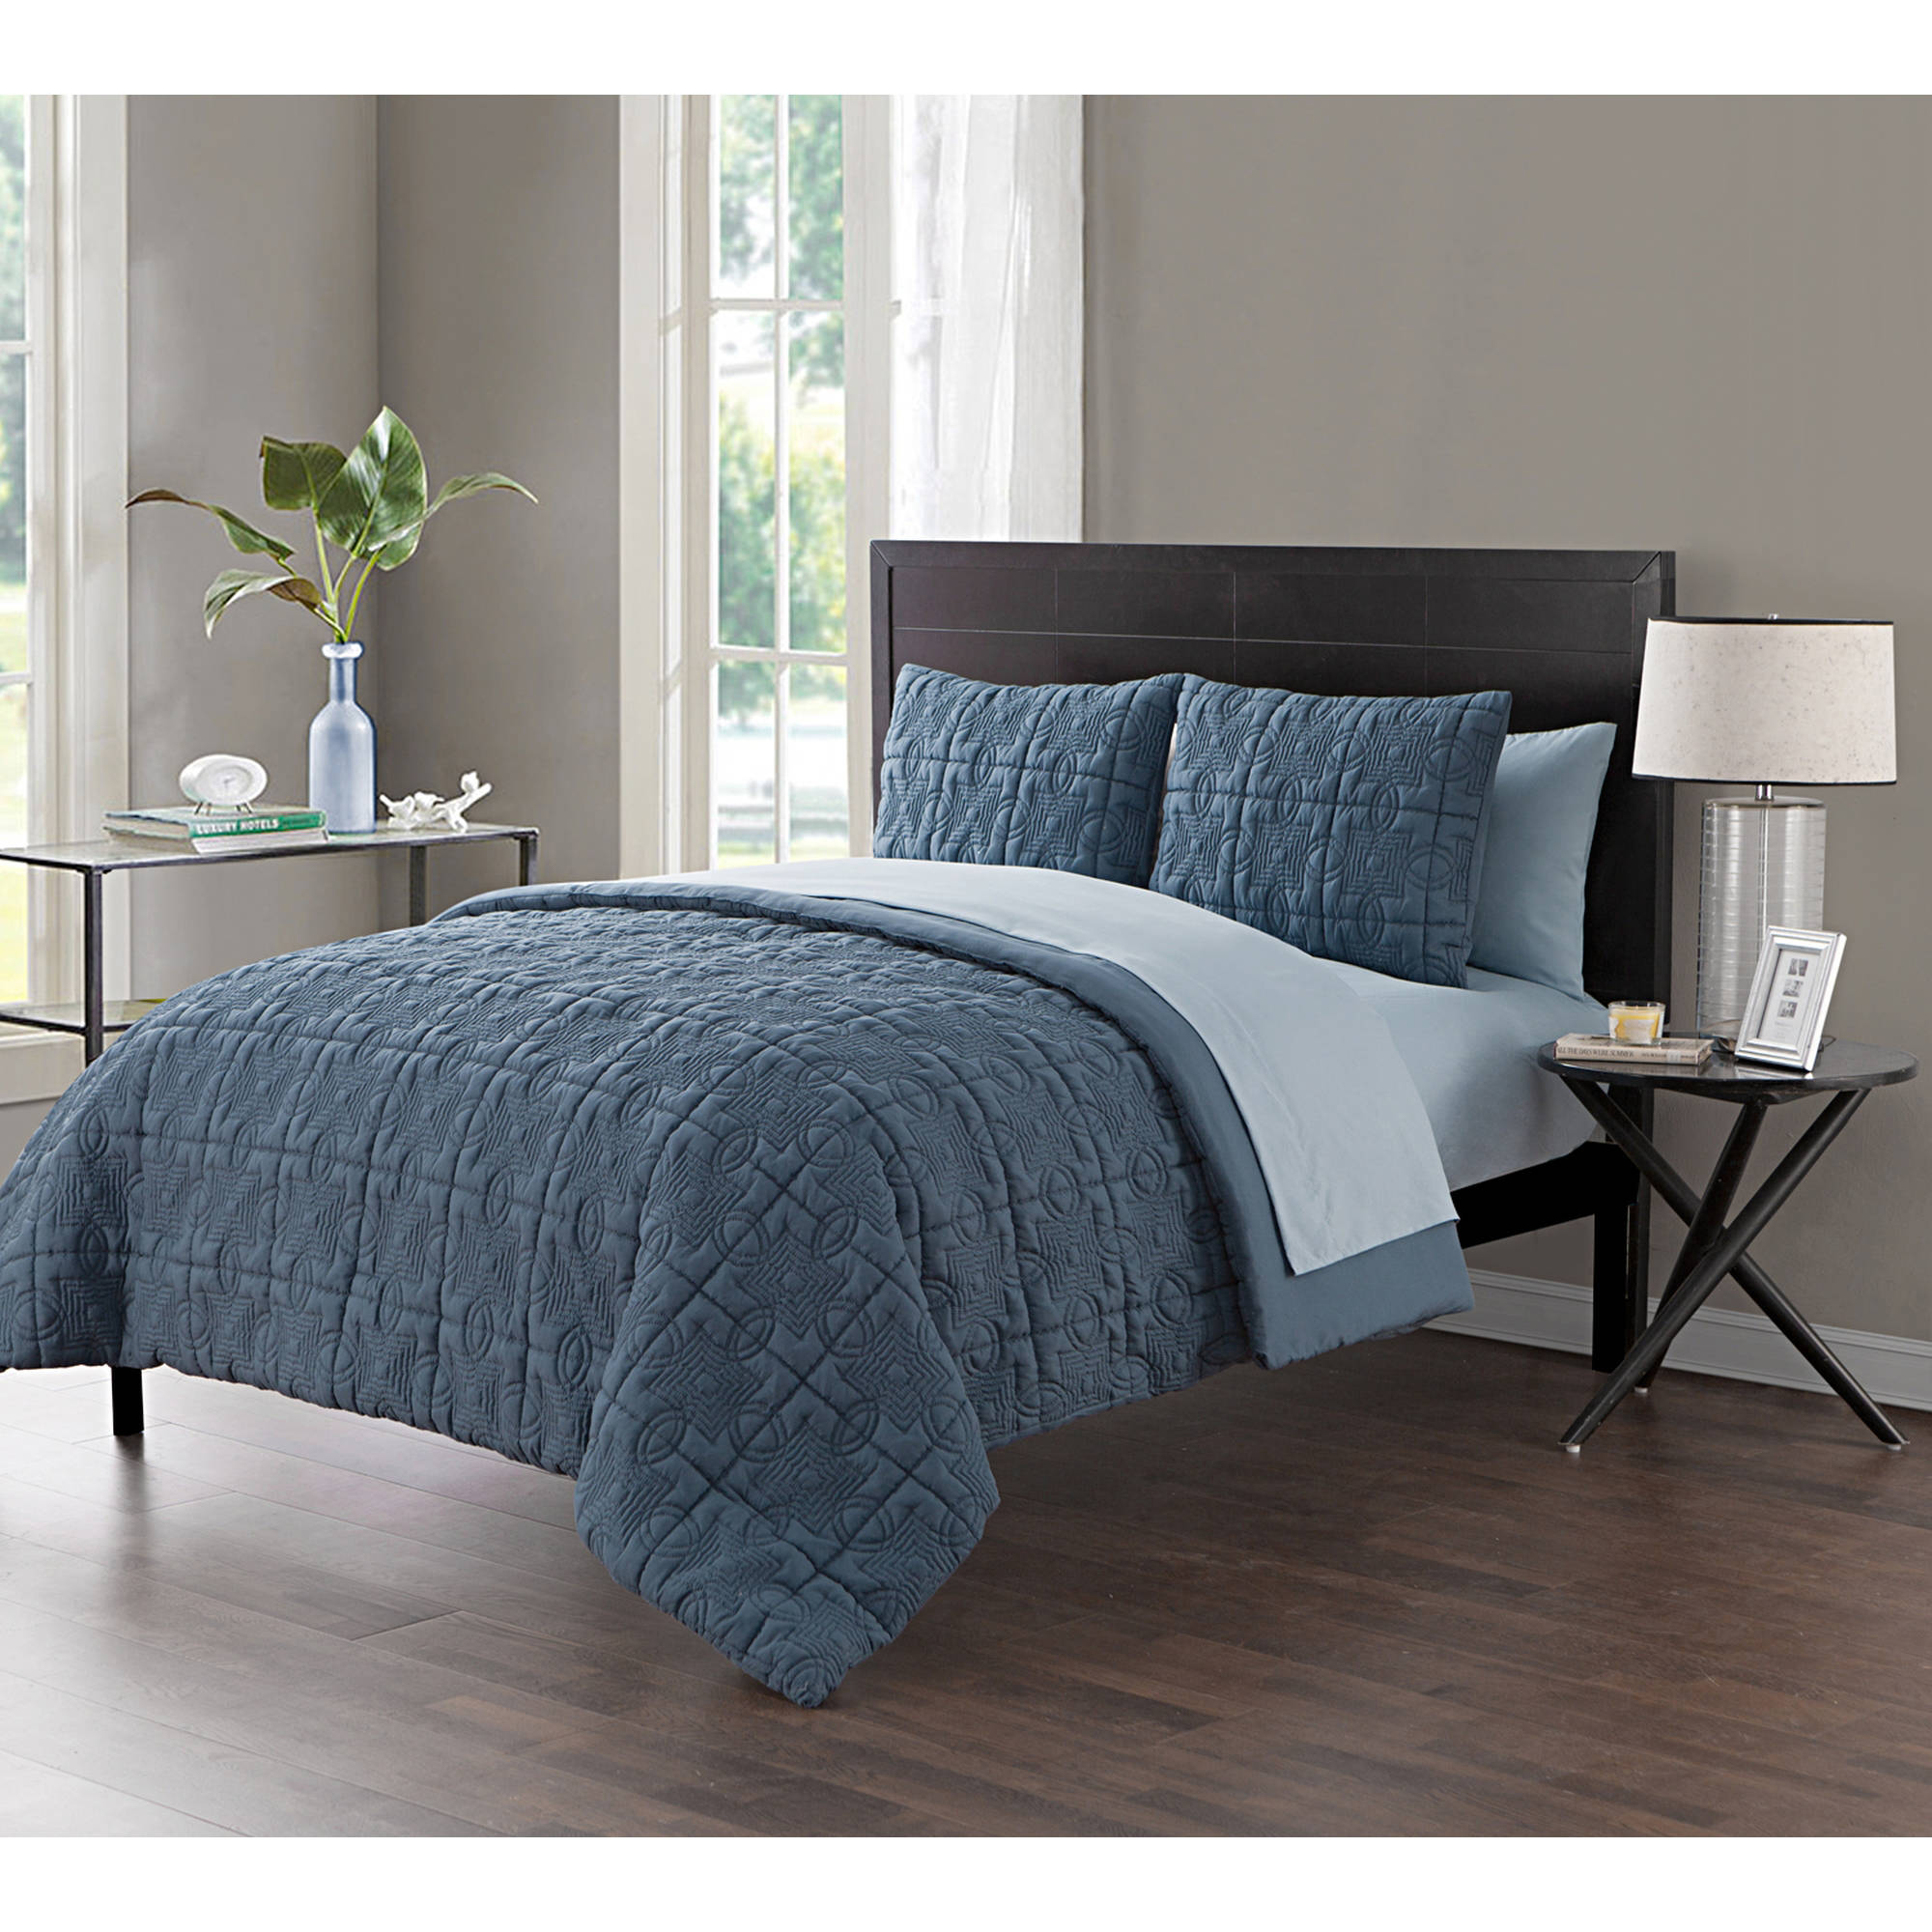 VCNY Home Iron Gate Geometric Embossed 5/7-Piece Bed in a Bag Comforter Set with Sheet Set, Multiple Colors and Sizes